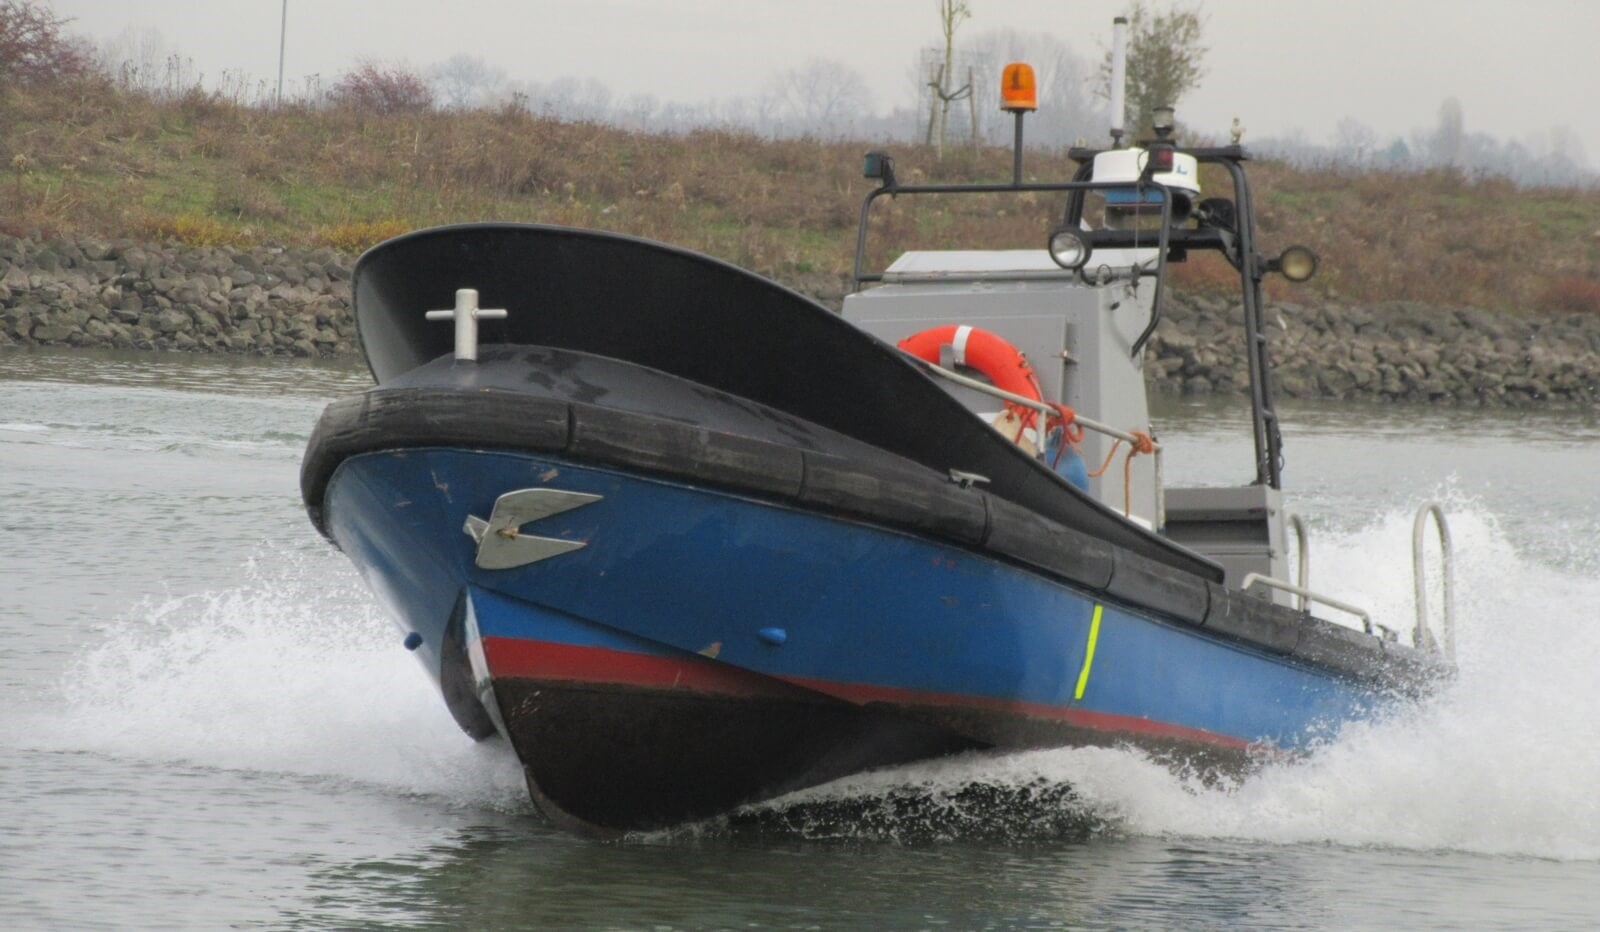 Used Survey boat for sale